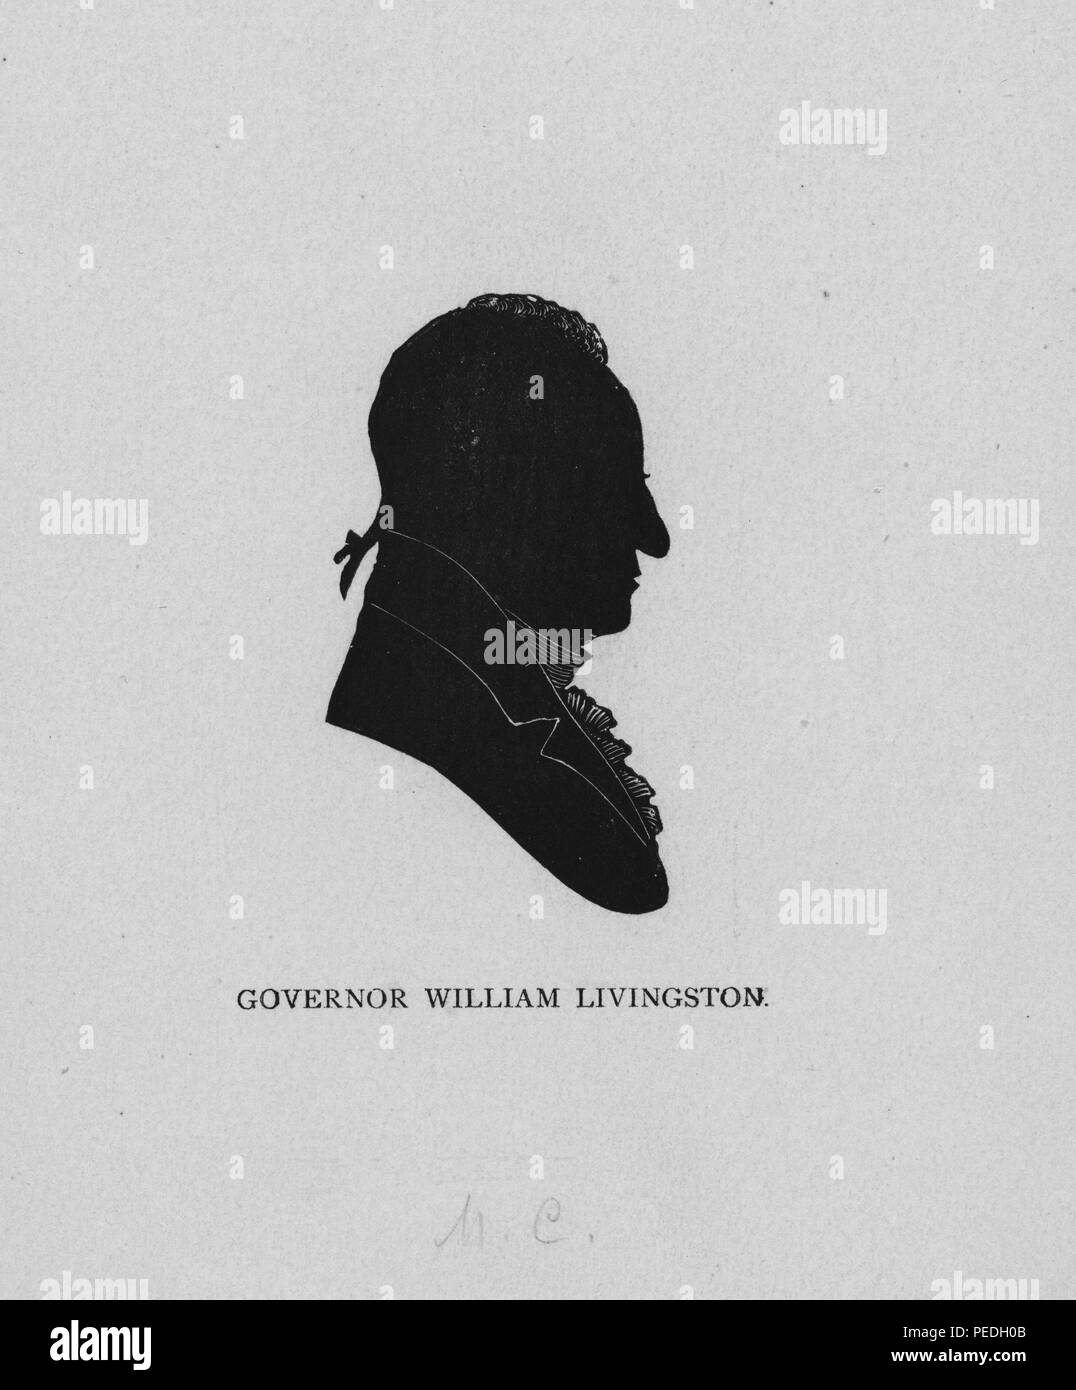 Silhouette portrait of William Livingston, New Jersey delegate to the Continental Congress and one of the original Framers of the United States Constitution, who also served as governor of New Jersey between 1776 to 1790, 1849. From the New York Public Library. () - Stock Image